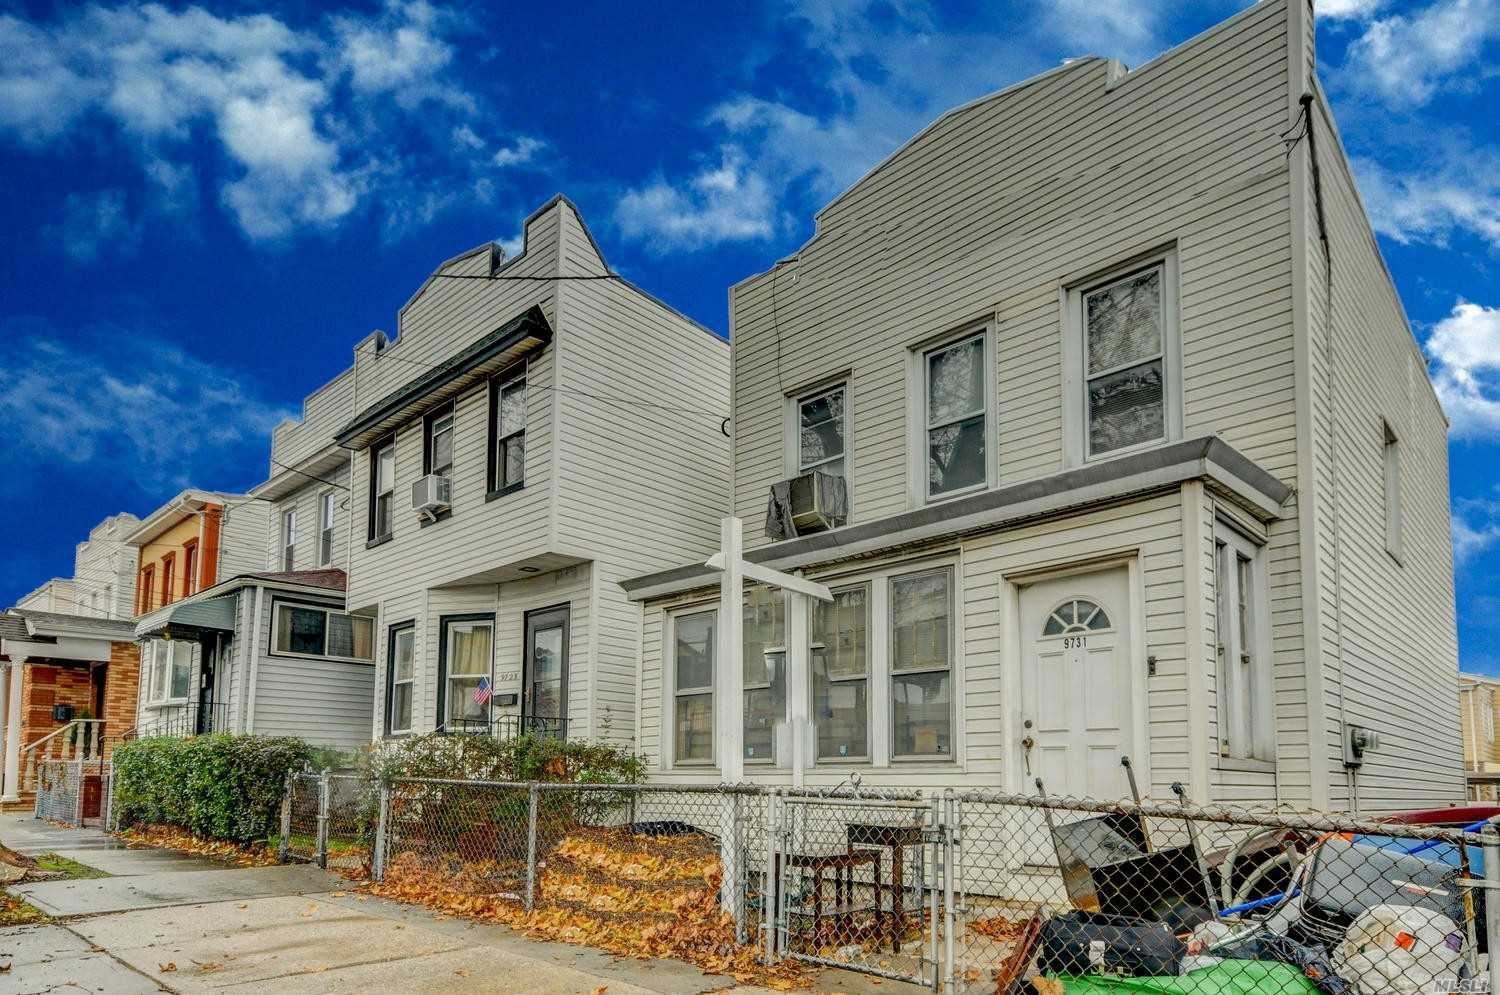 97-31 87th Street, Ozone Park, NY 11416 - MLS#: 3182104